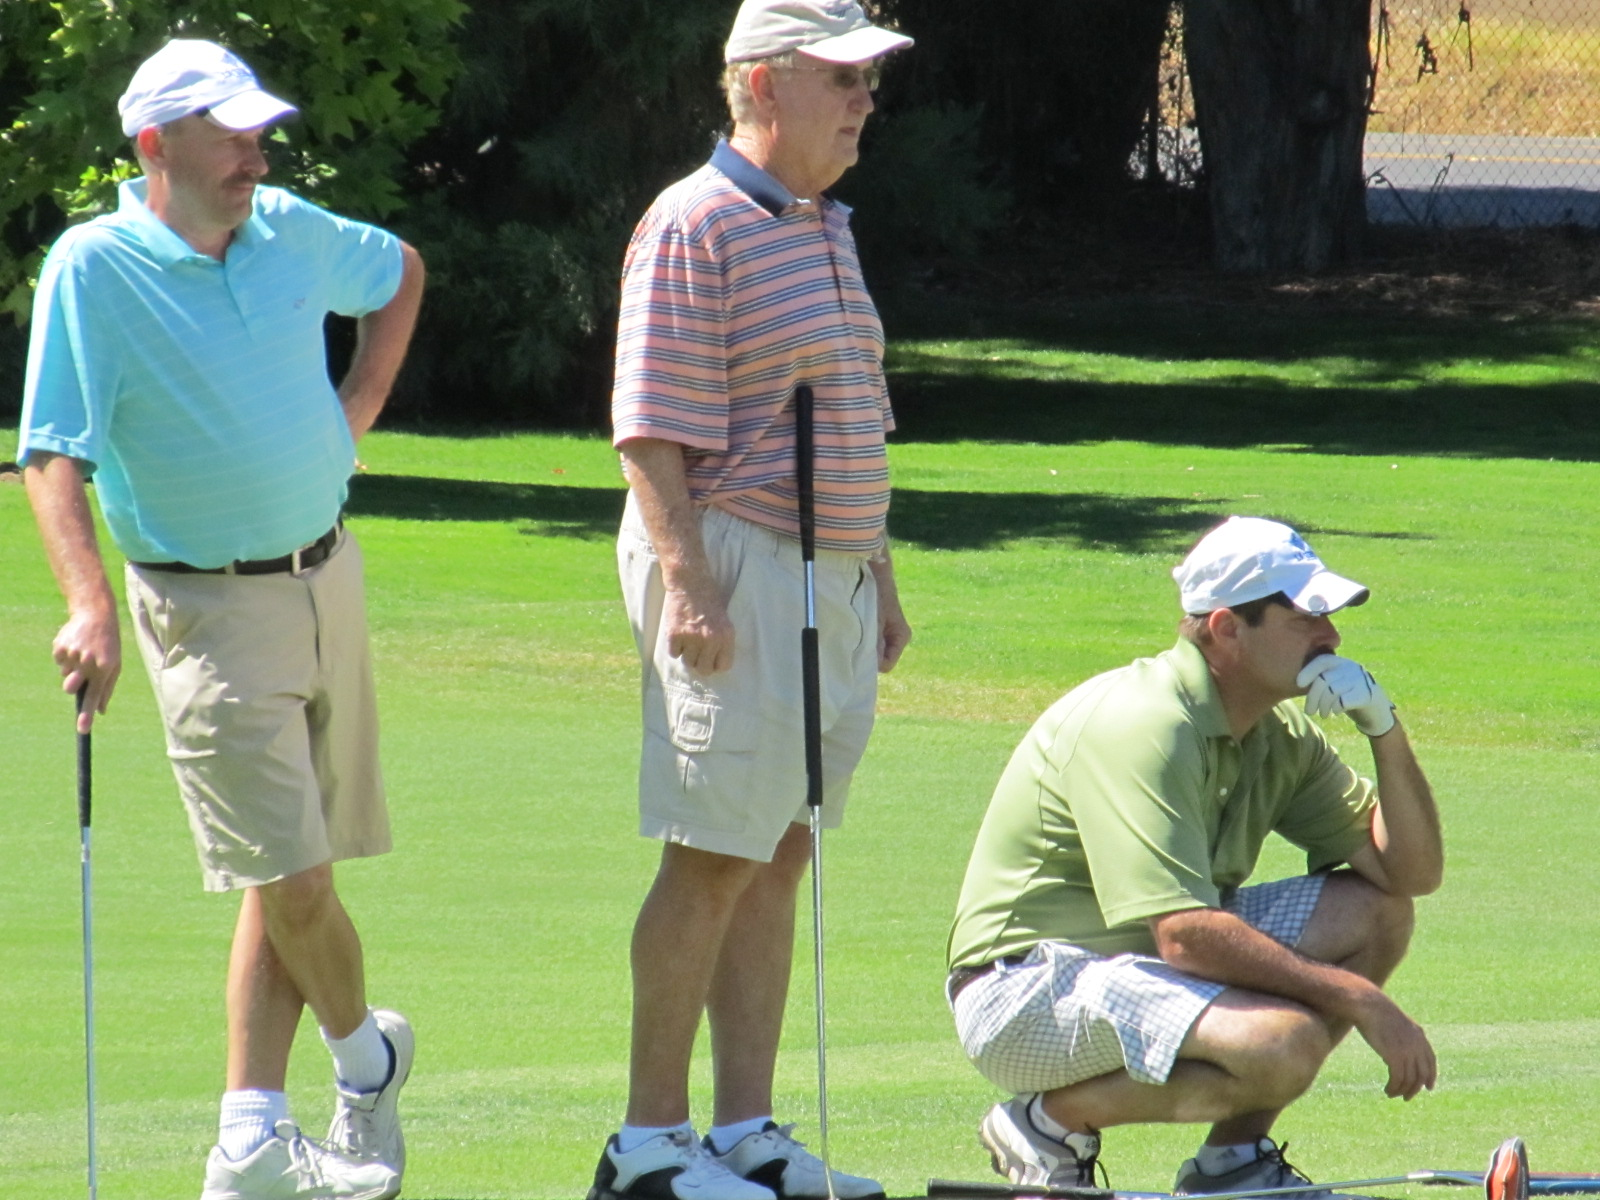 American River Bank Foundation Charity Golf Tournament